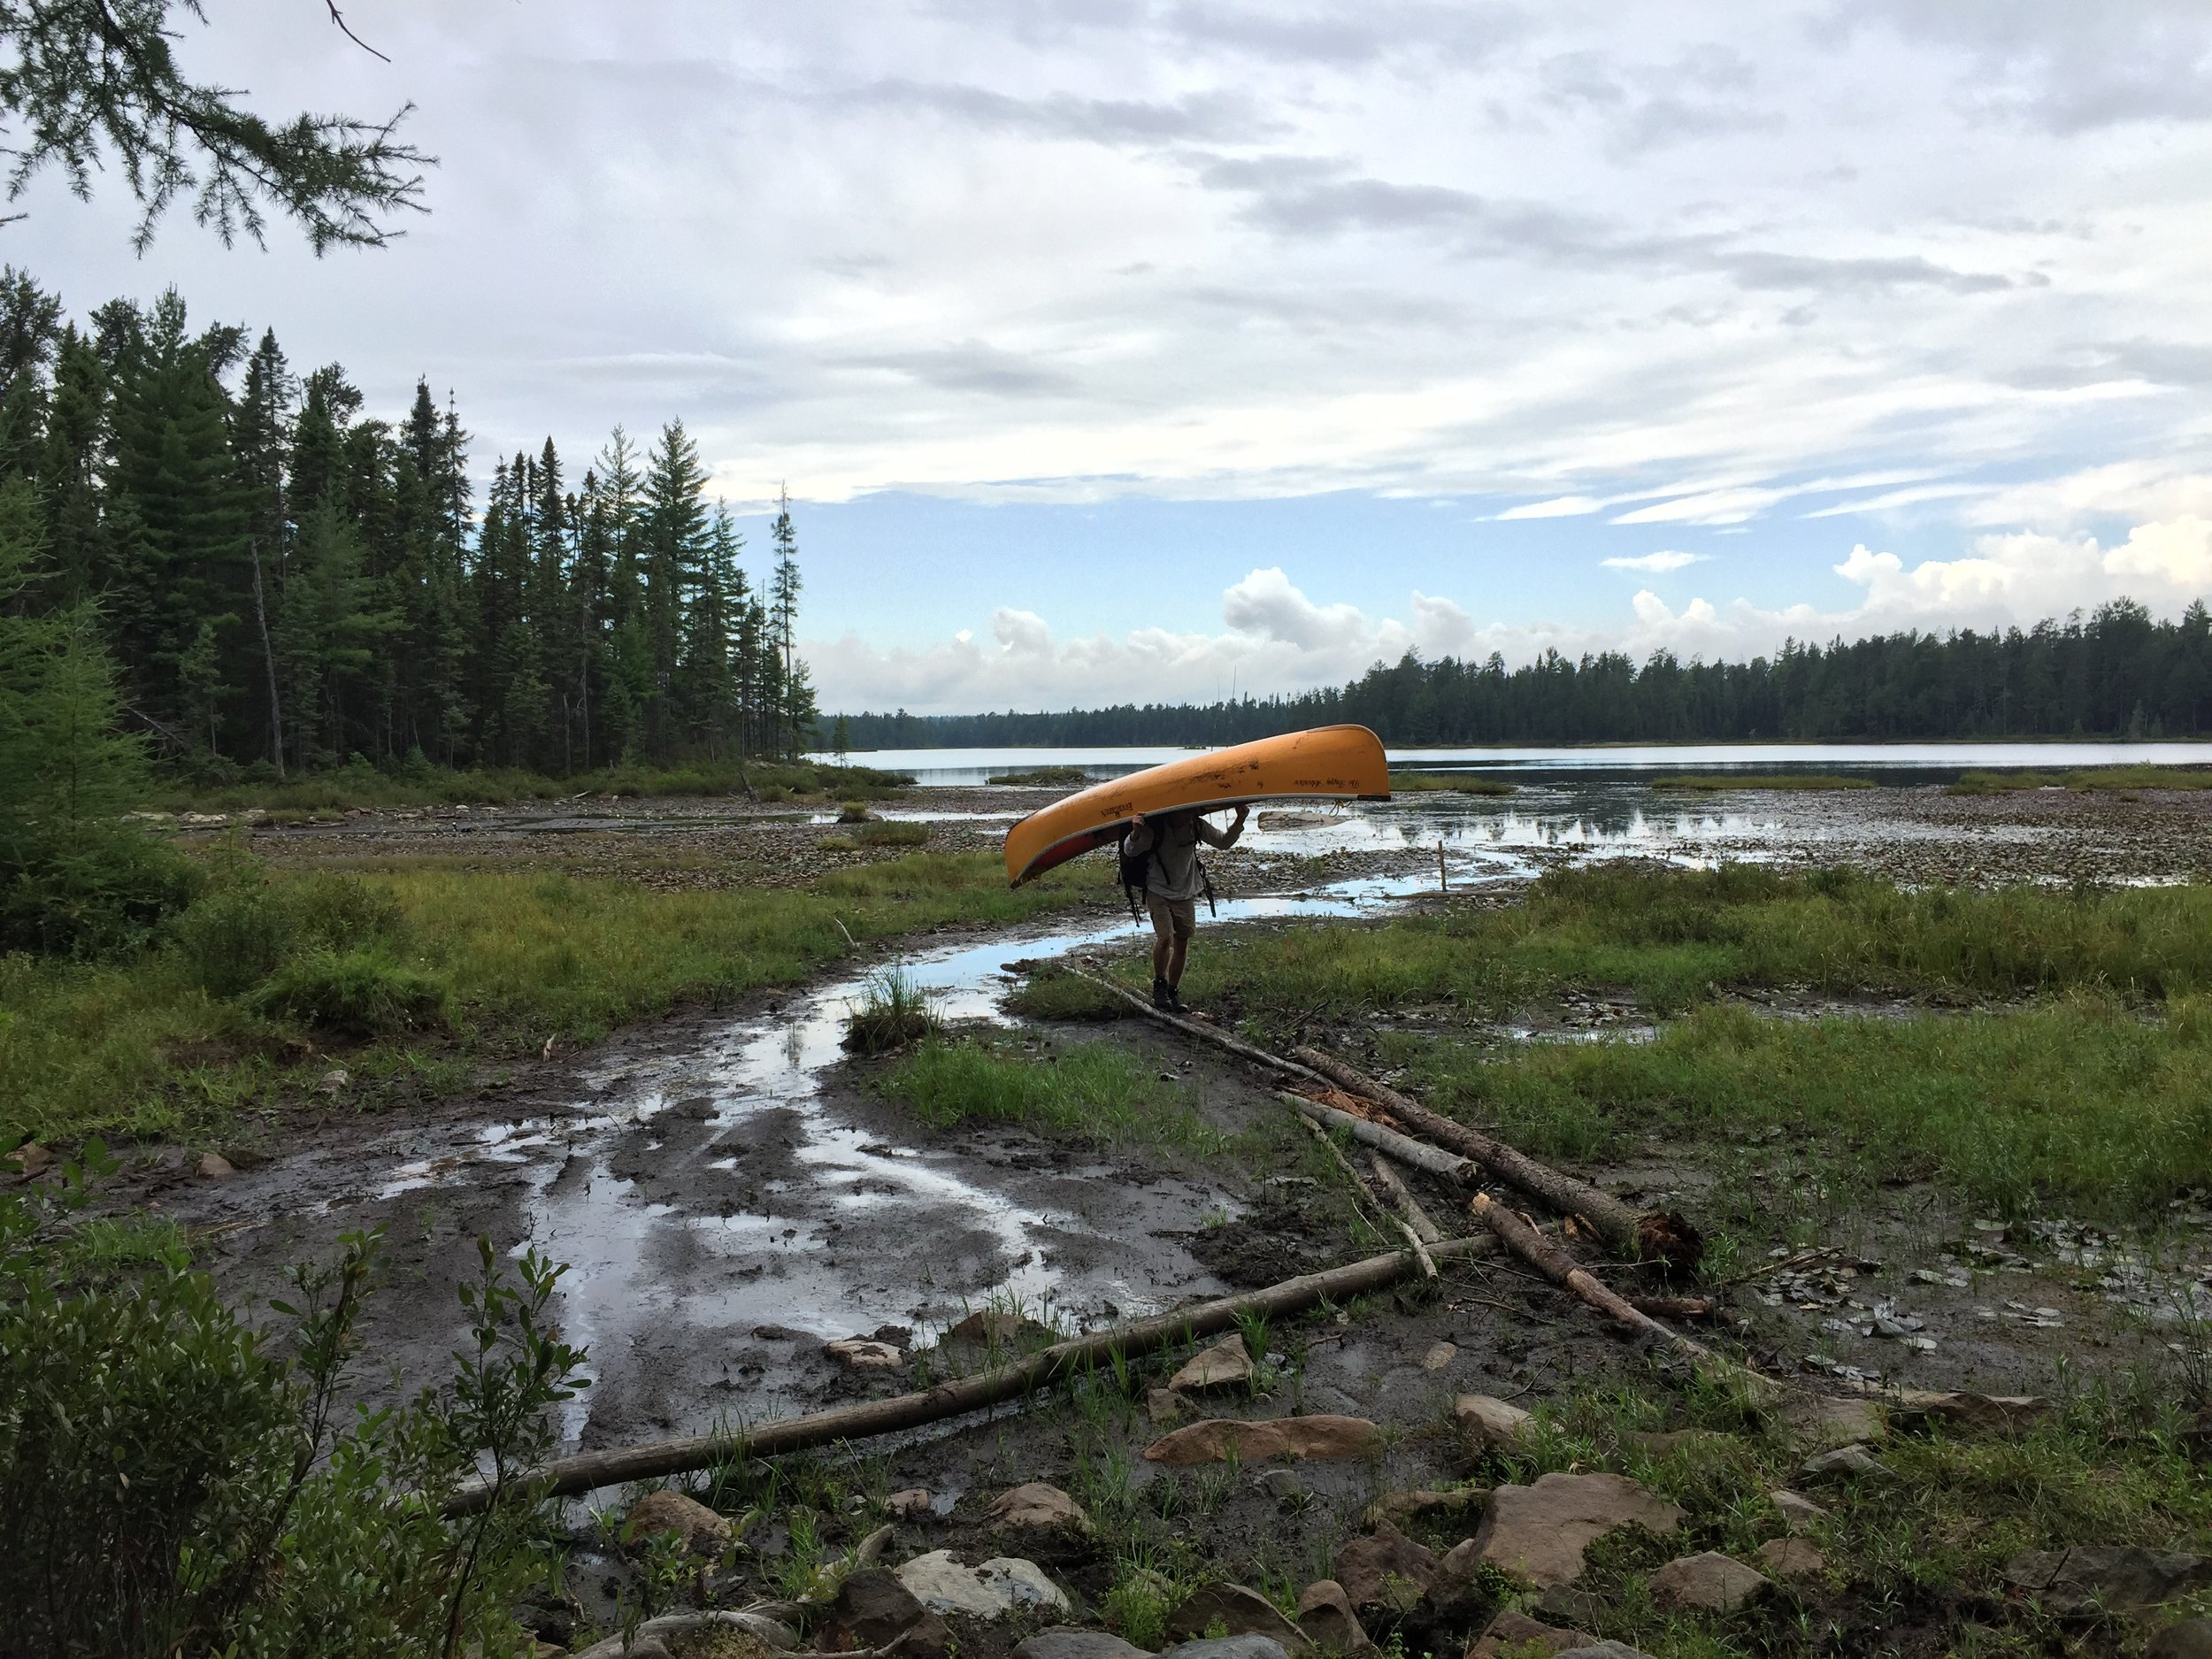 A mucky portage in the Canton Lakes, Temagami, Ontario. Day 15 of 17.